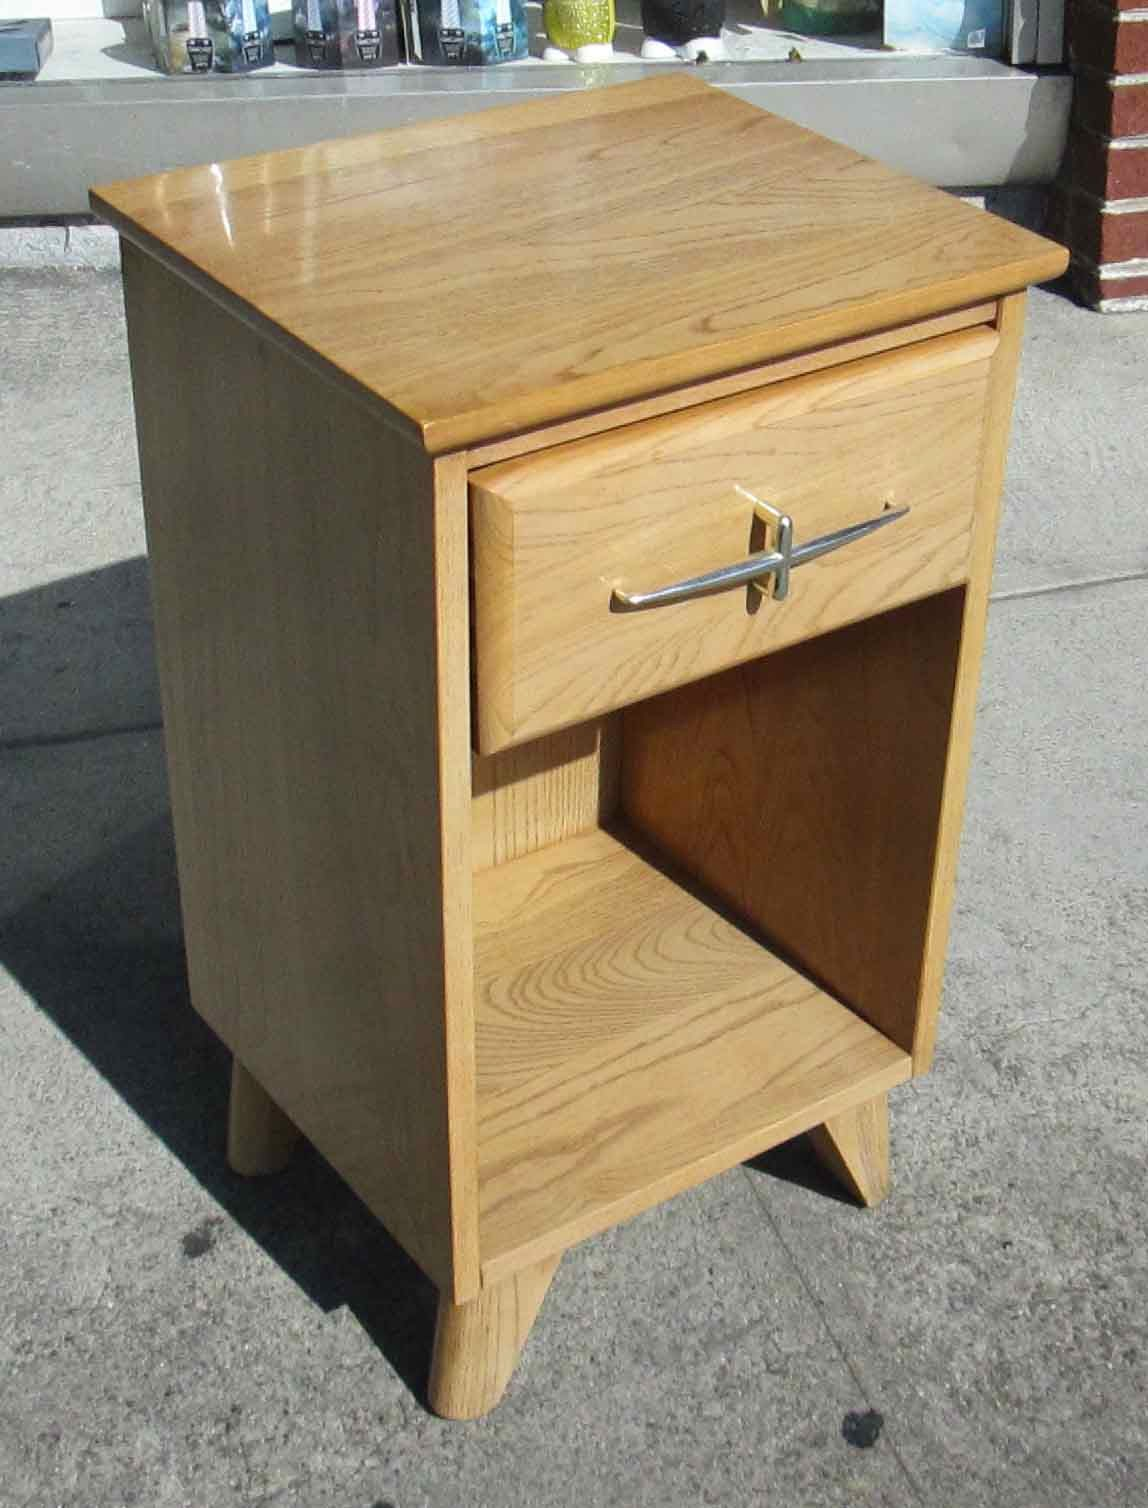 Charmant Uhuru Furniture Collectibles Sold Small Nightstand By La Period